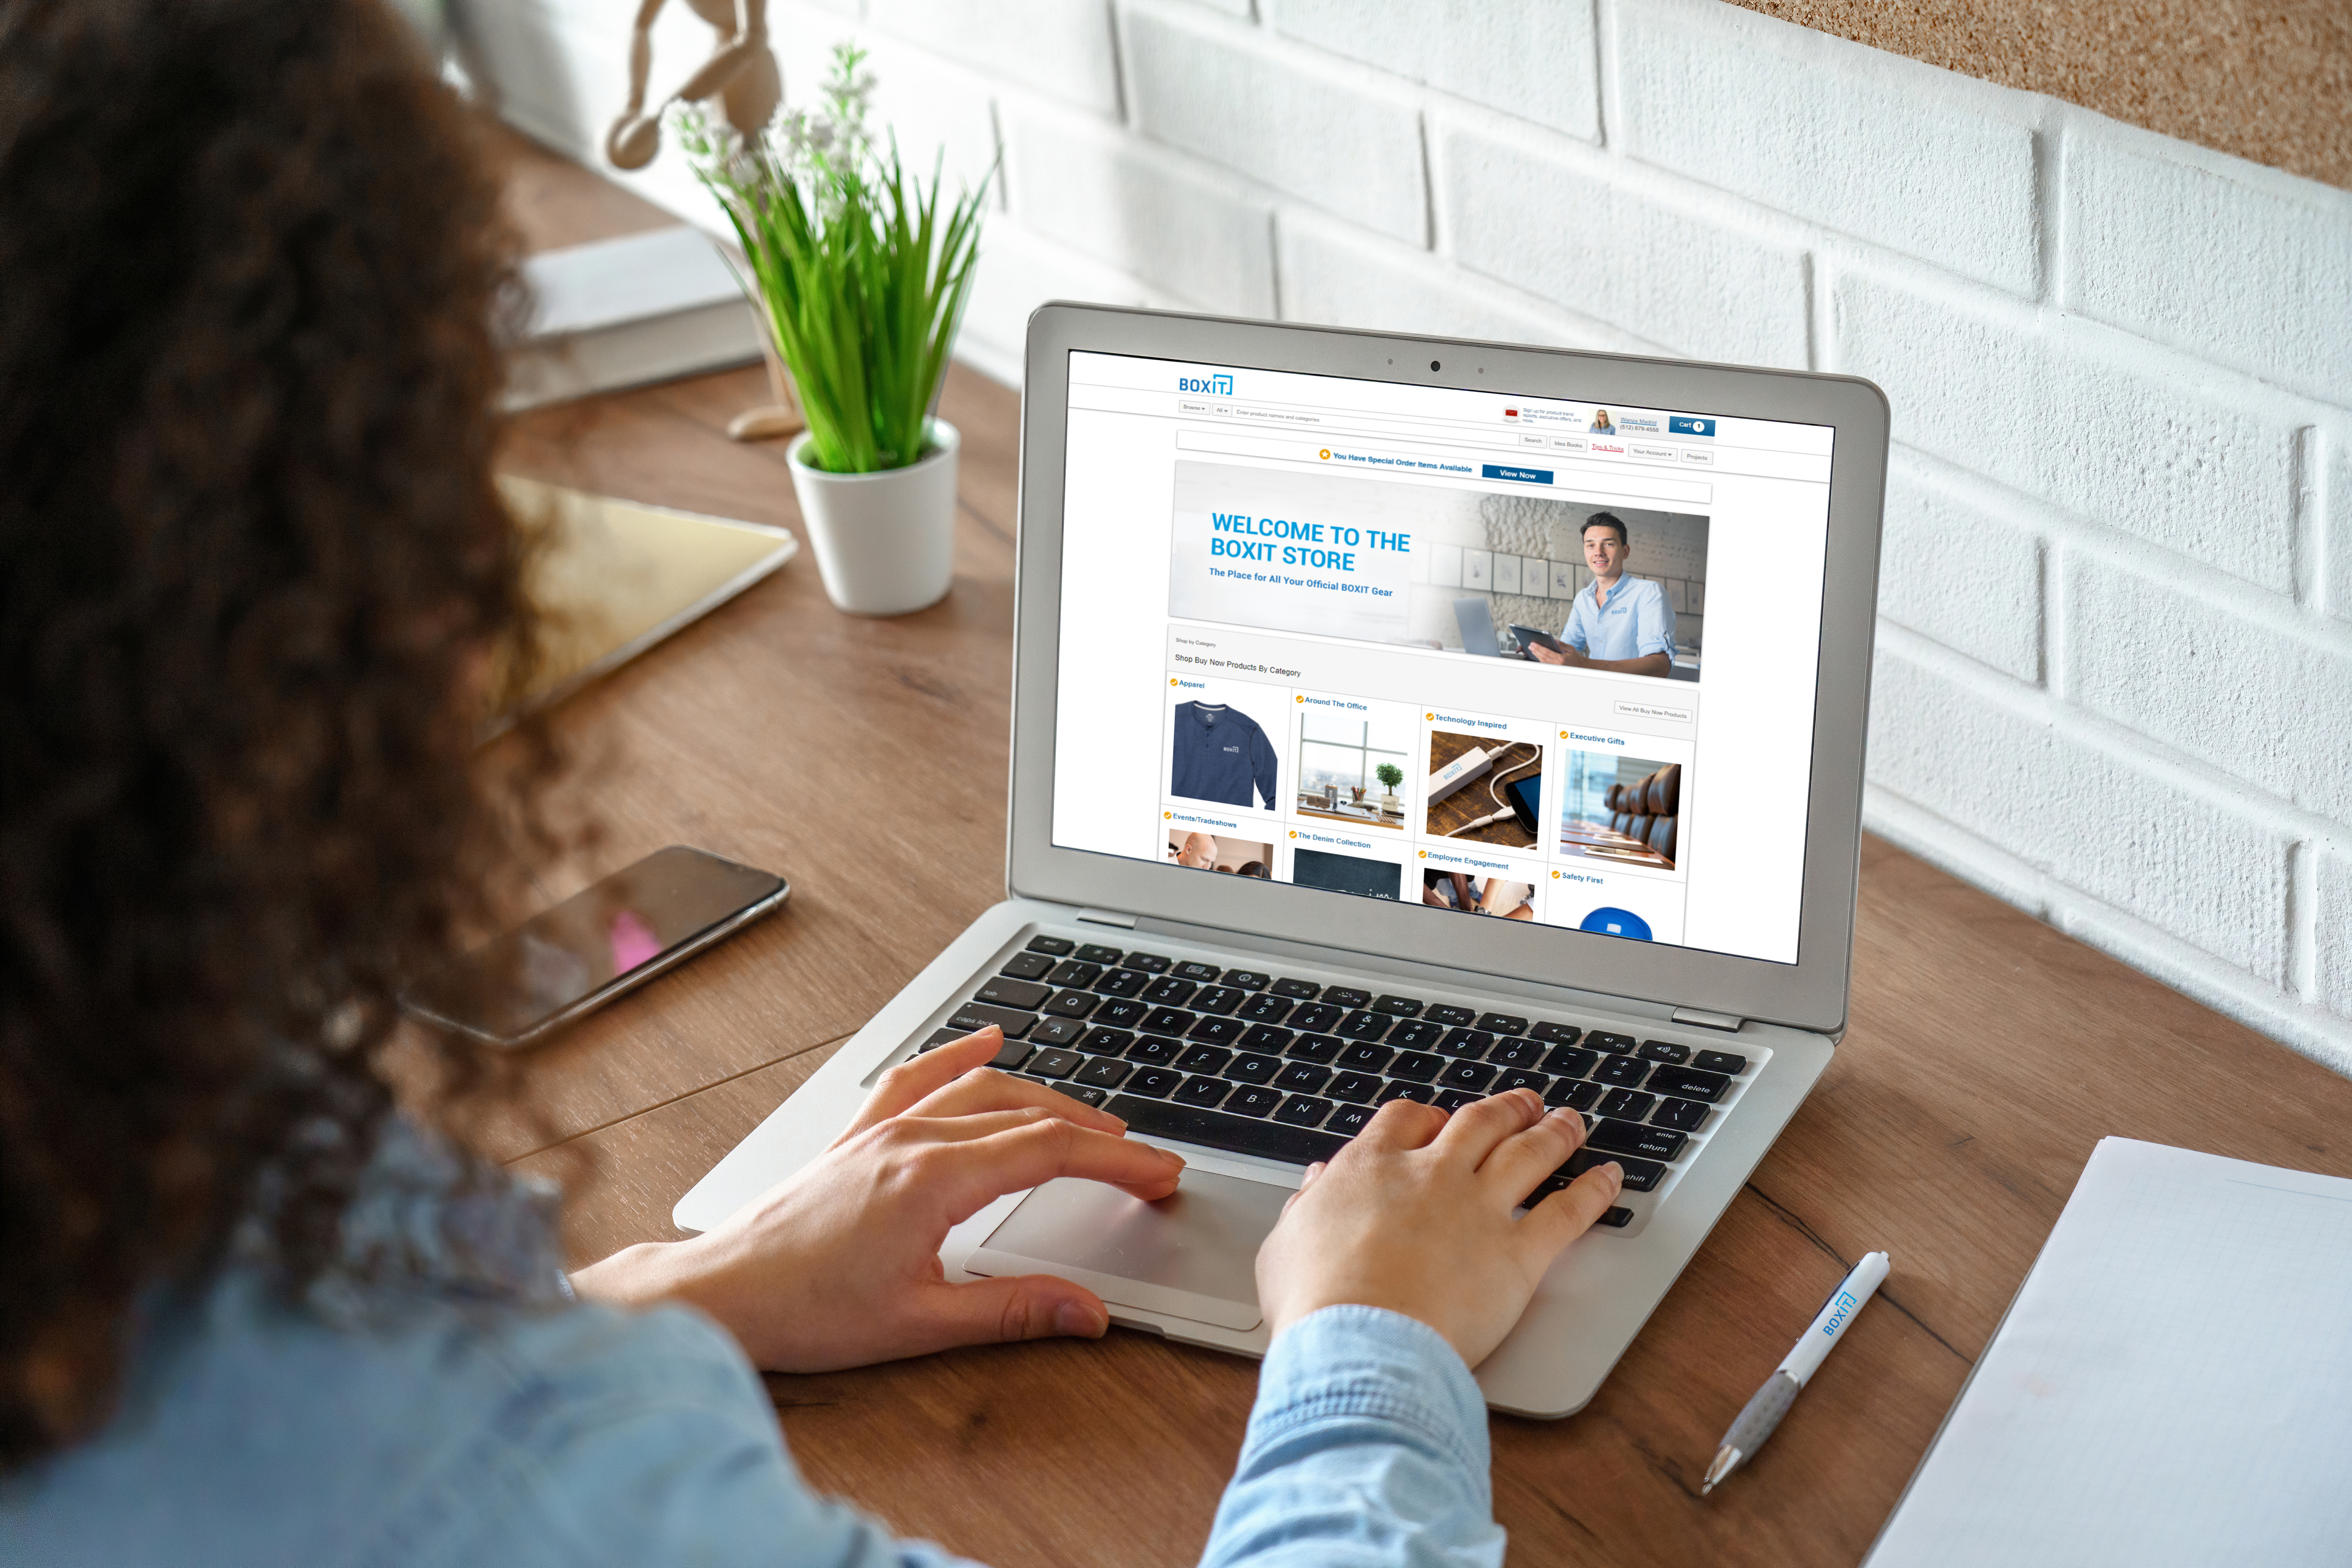 Person on computer viewing portal store